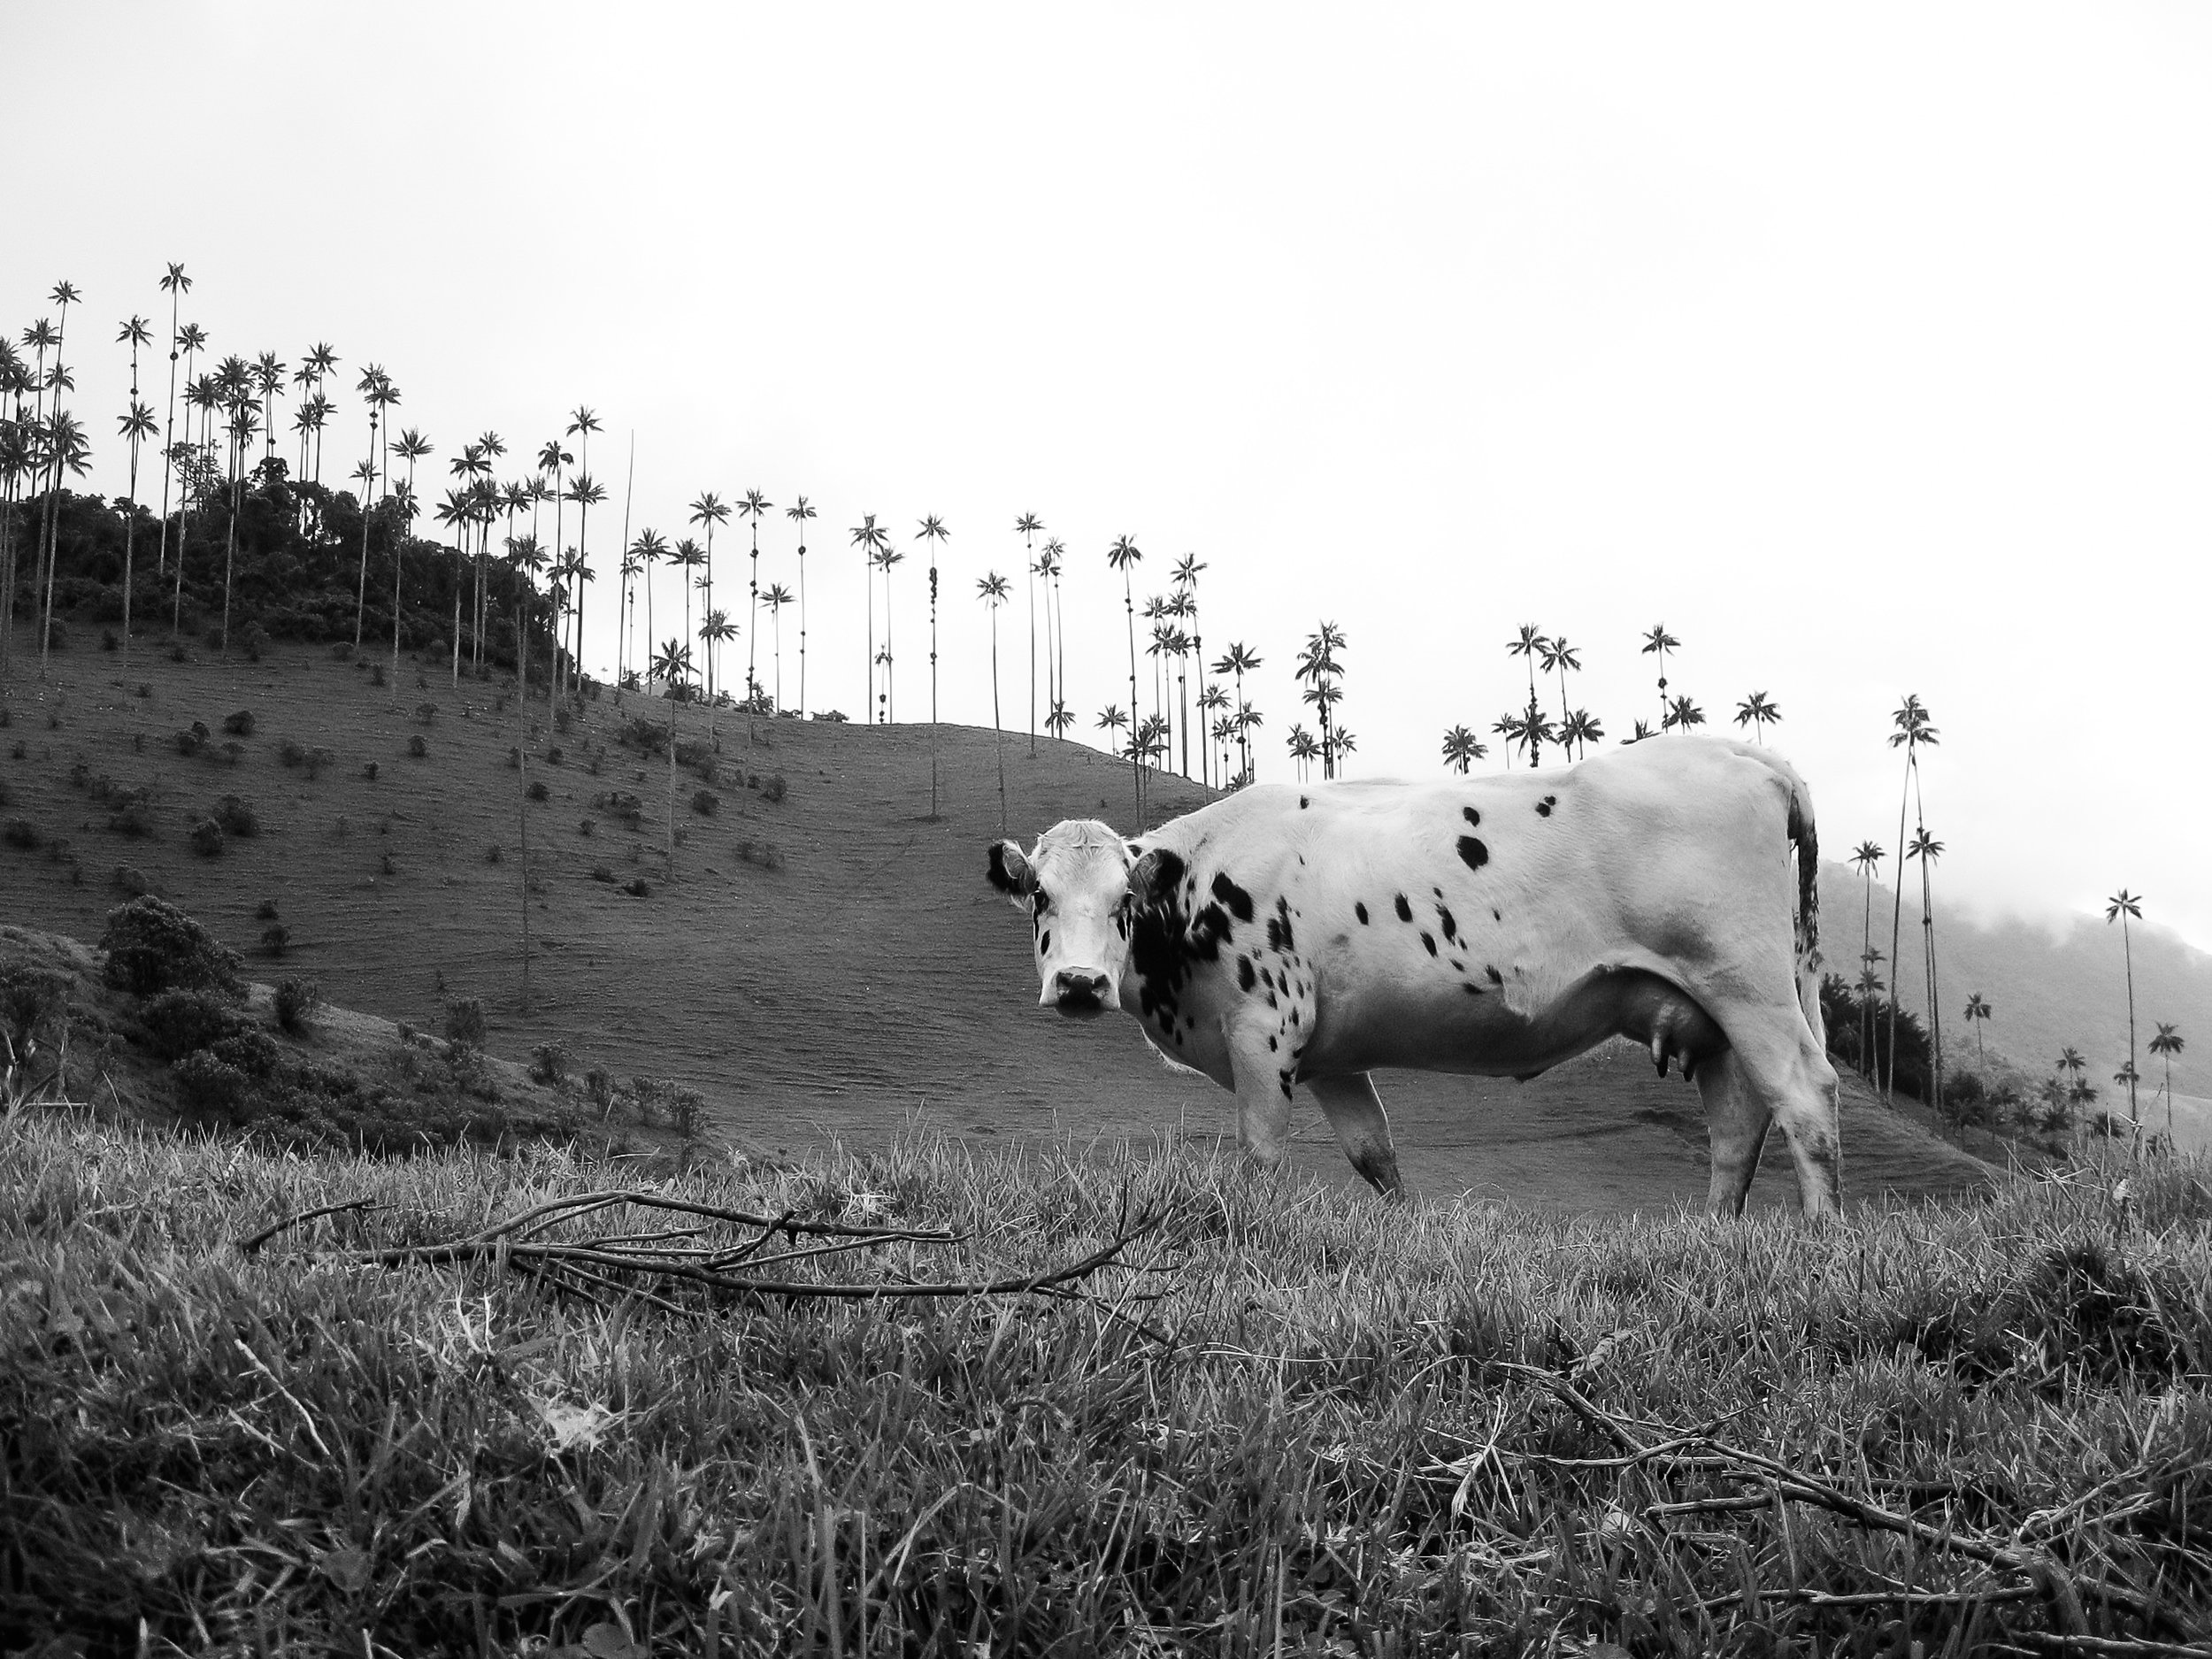 salento_valle-de-cocora_acaime-nature-reserve-0829-cow-infront-of-tall-palm-trees.jpg